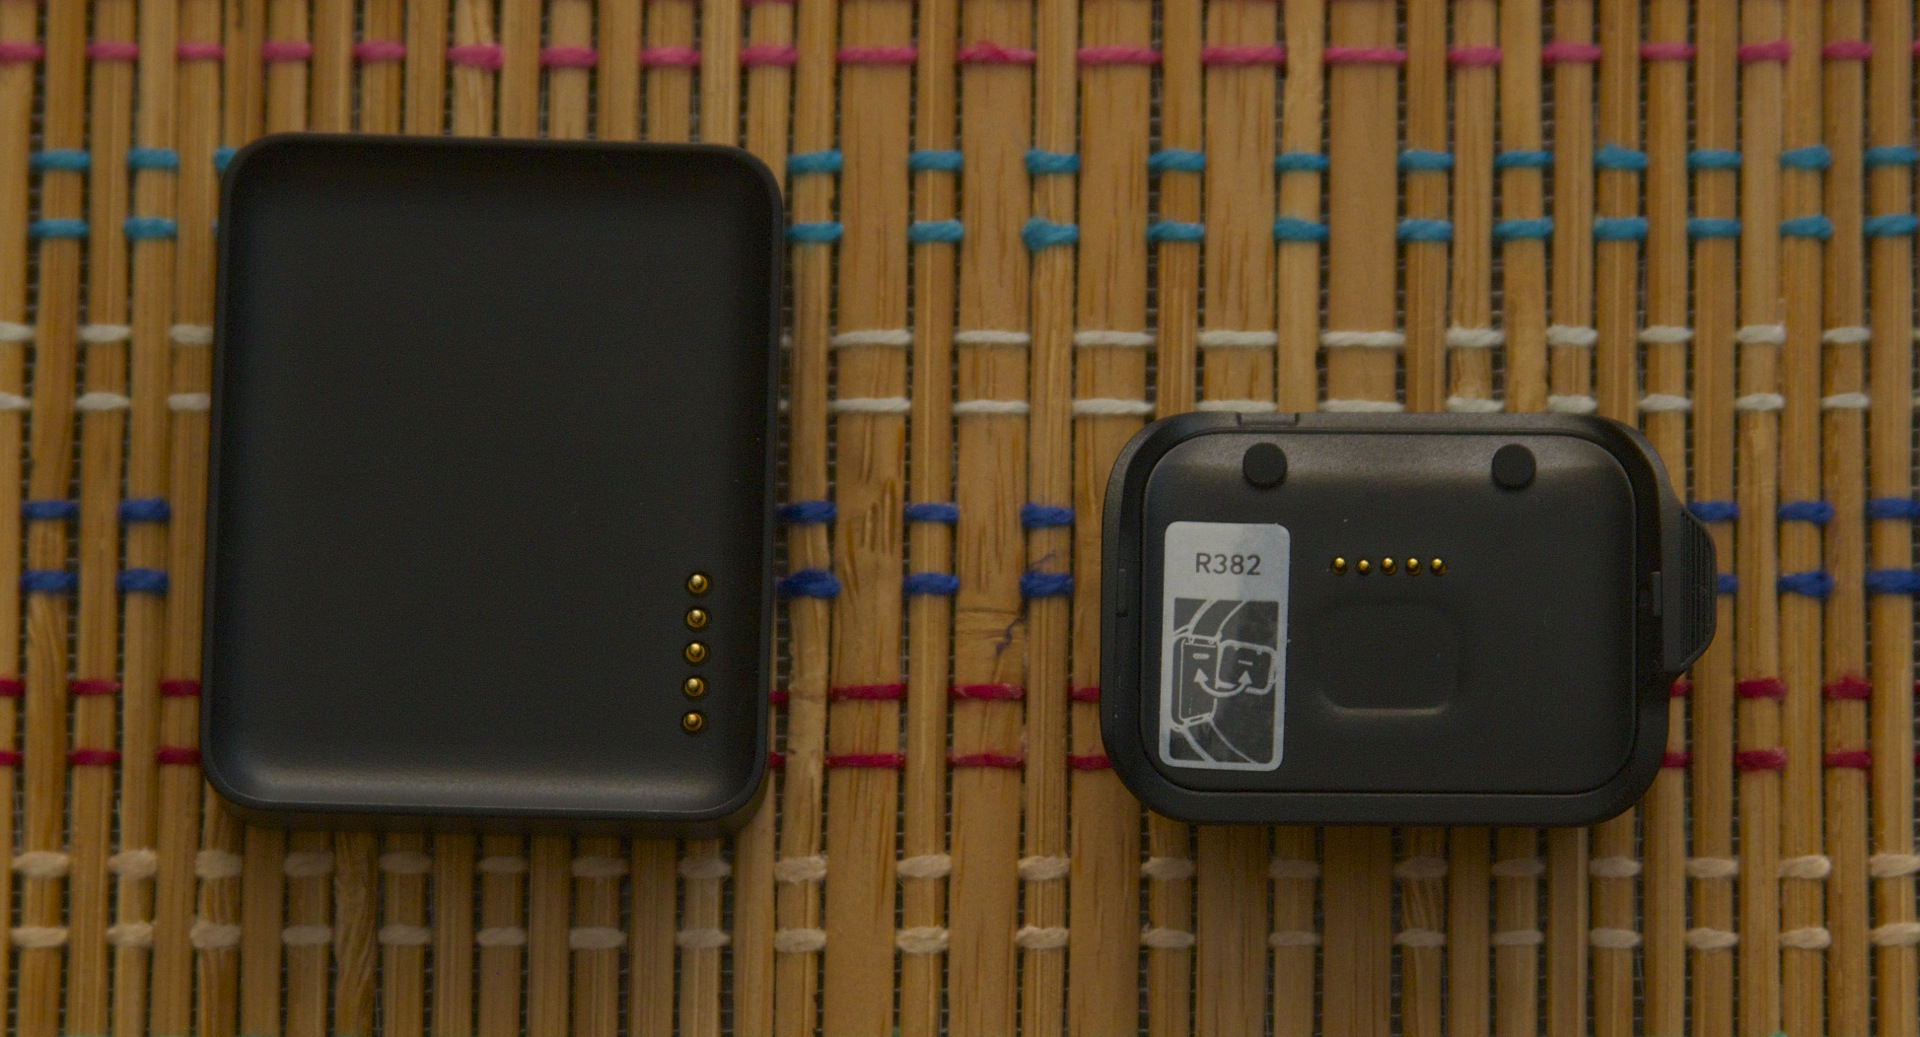 The G Watch charging cradle (left) and the Gear Live's smaller cradle (right).